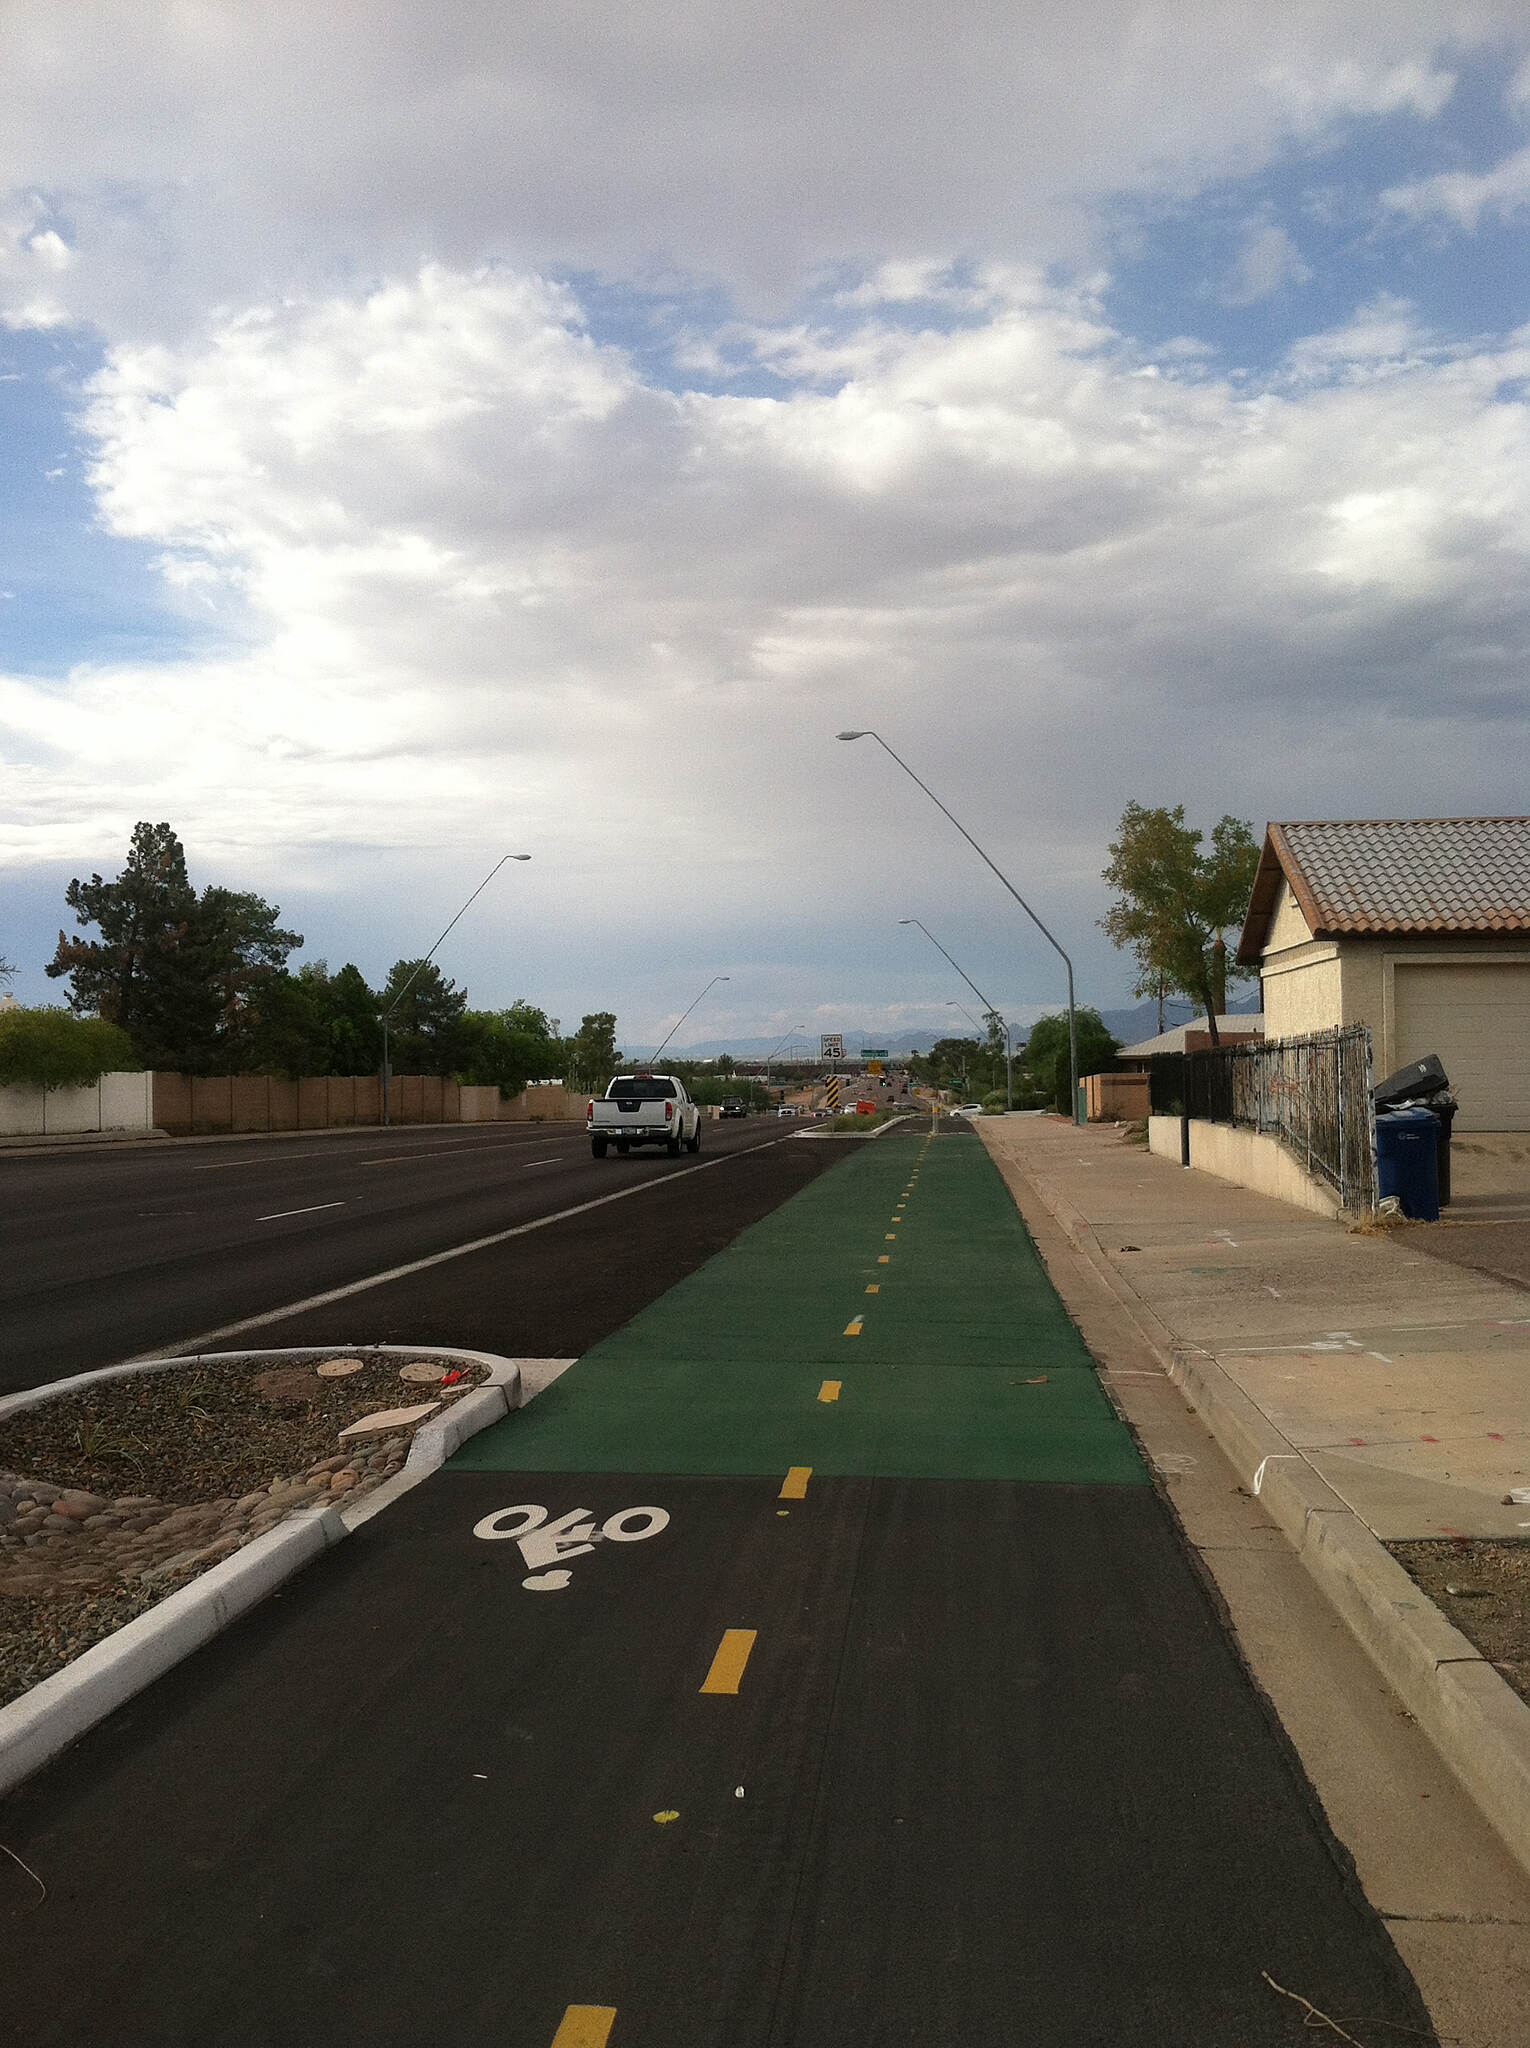 Stadium Connector Shared Use Pathway Stadium Connector Shared Use Pathway Photo by:City of Mesa